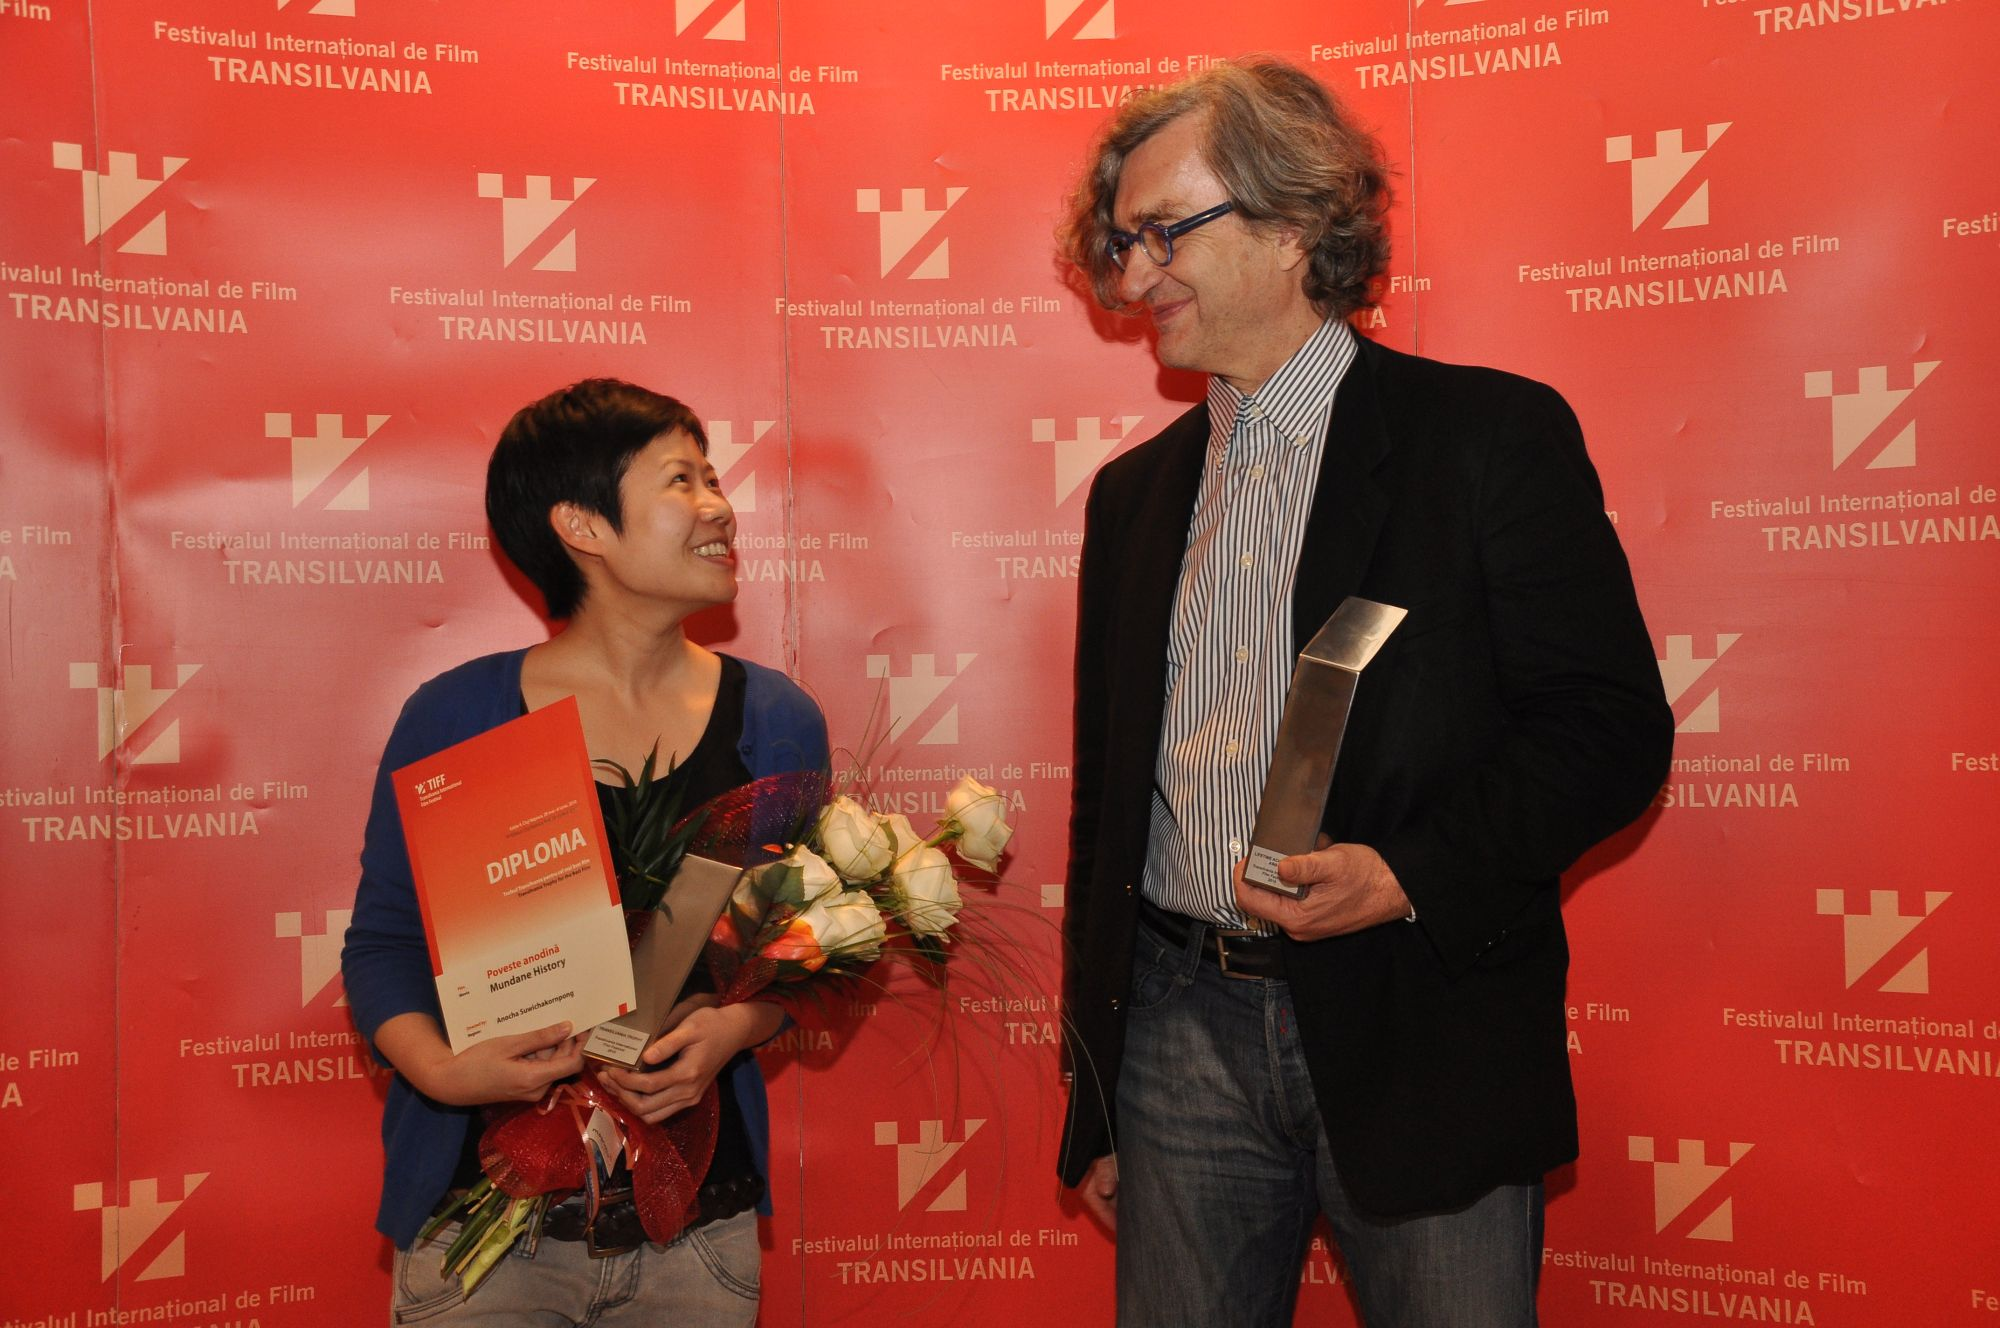 Anocha Suwichakornpong, the winner of this year's Transilvania Trophy for her debut Mundane History, with European Film Academy President Wim Wenders who was honoured with the Lifetime Achievement Award  presented to an outstanding personality of European cinema. Courtesy TIFF